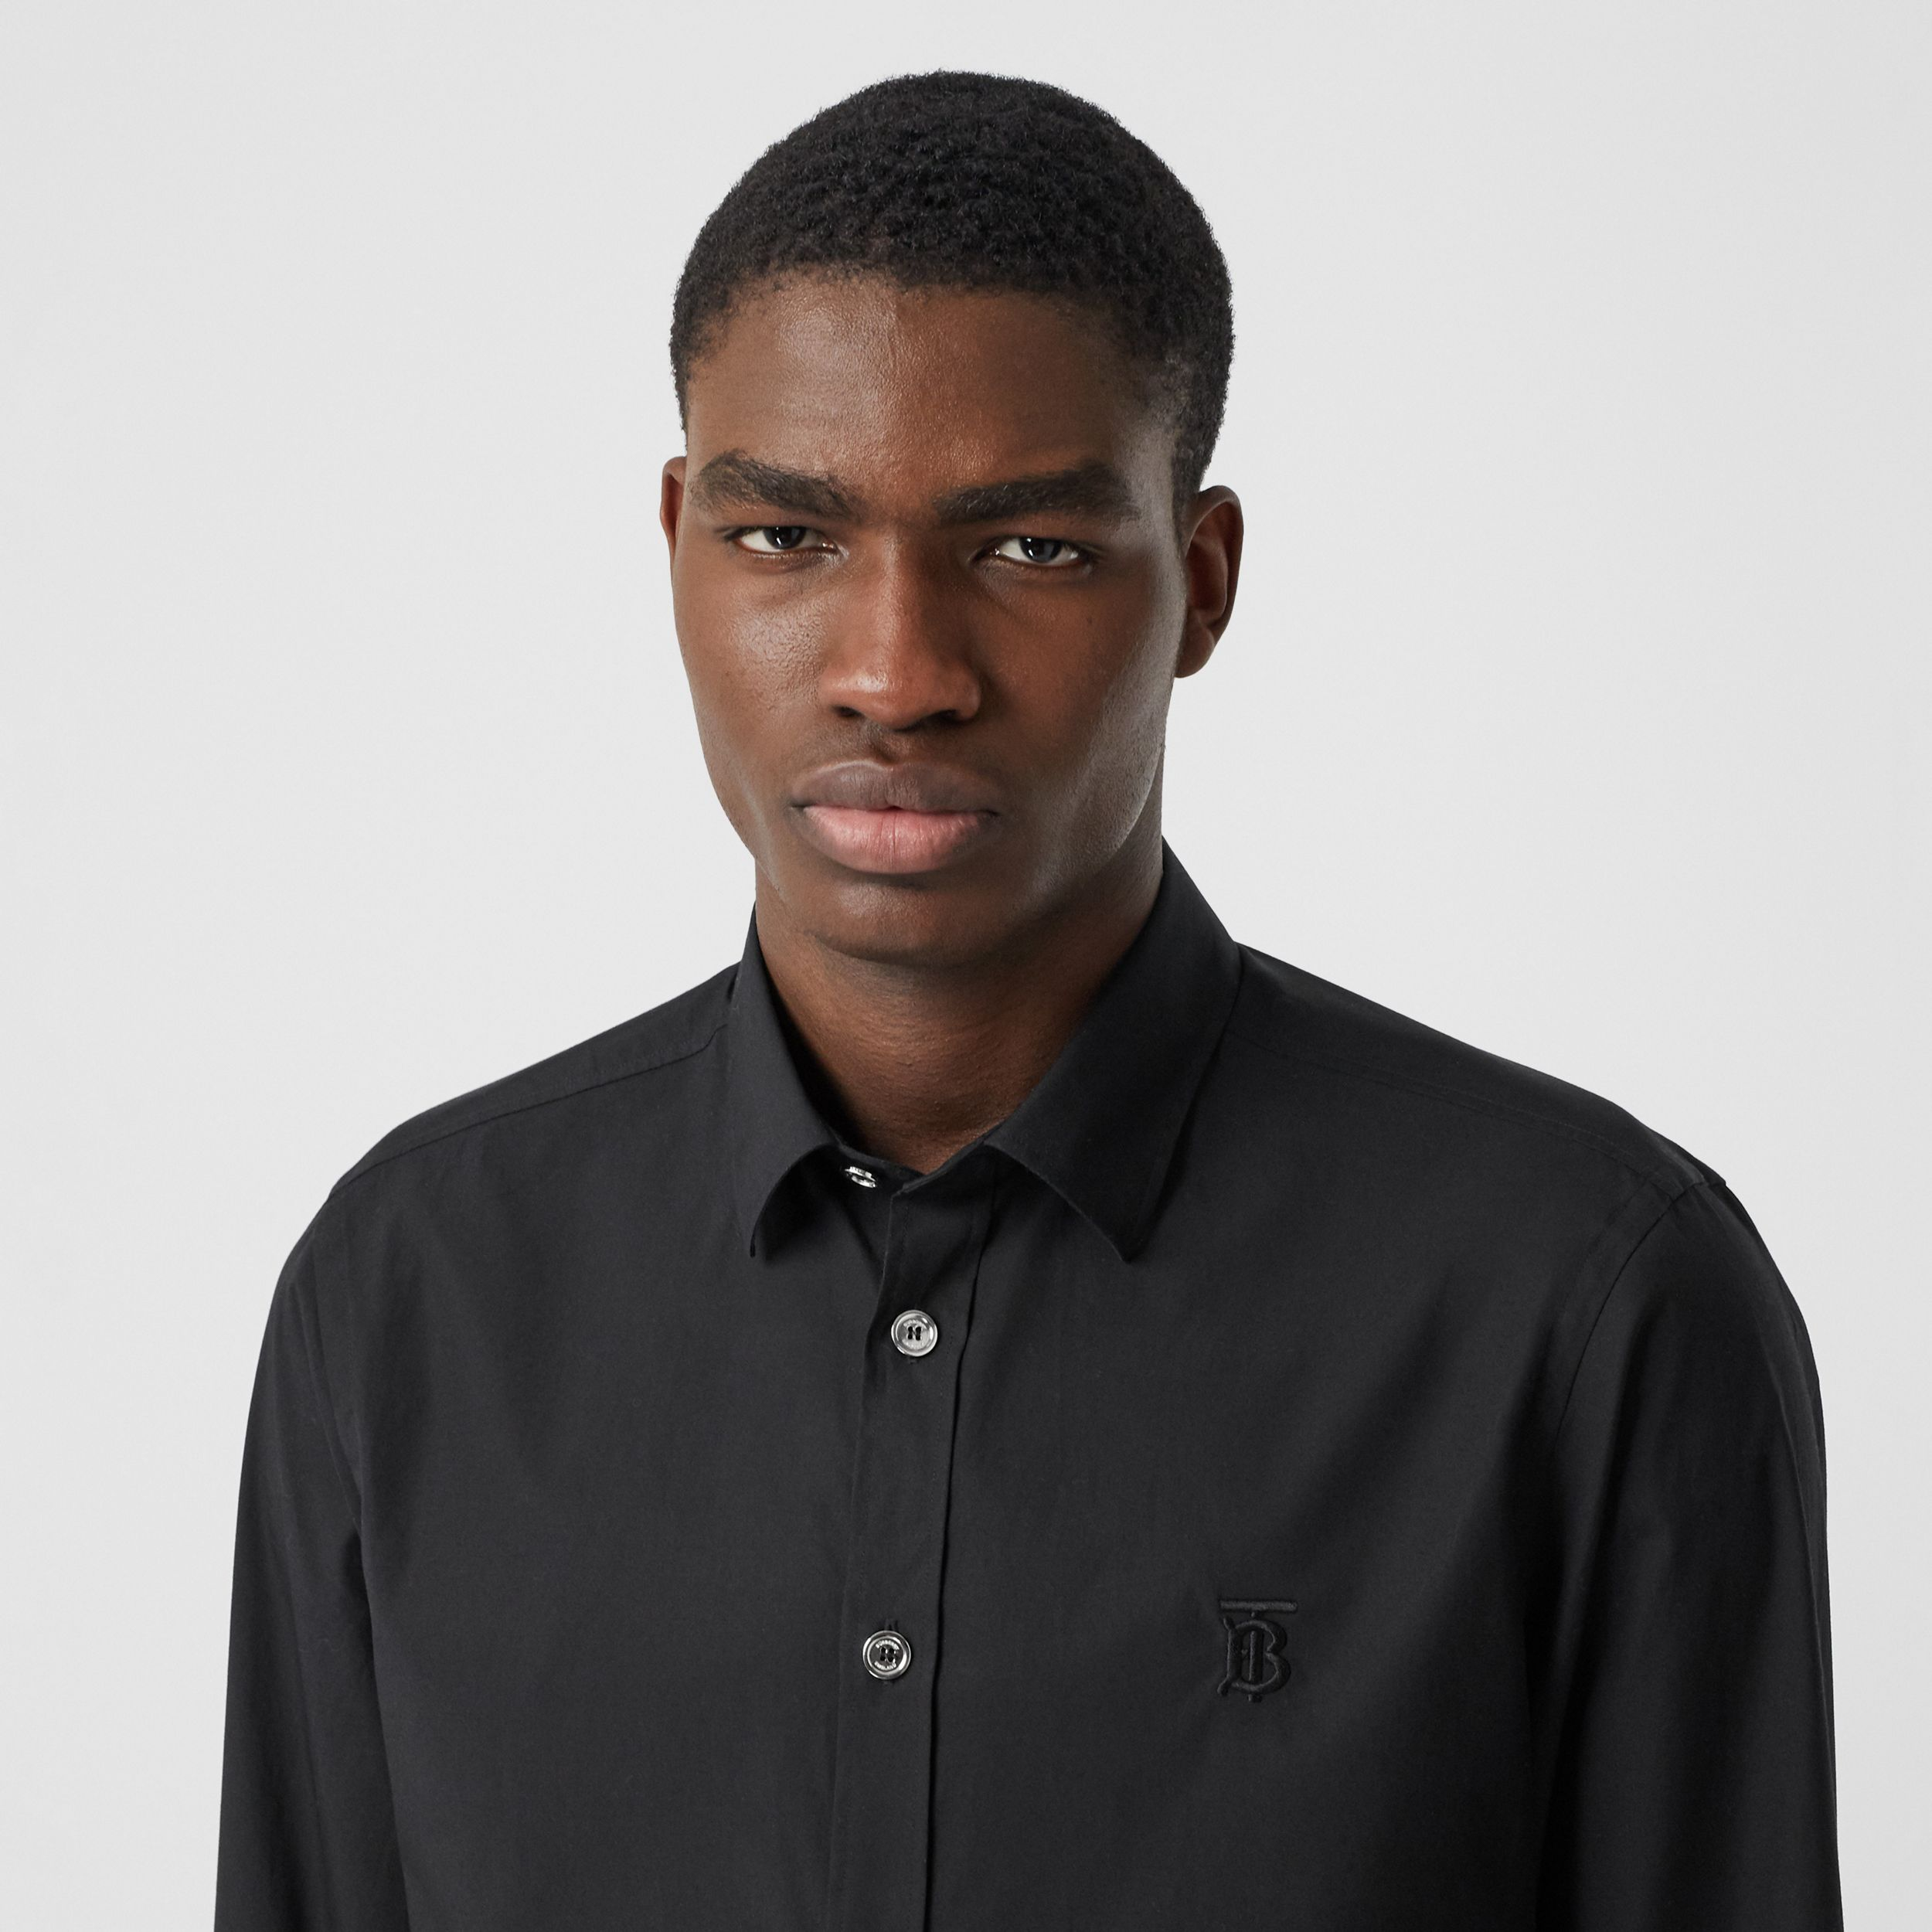 Monogram Motif Stretch Cotton Poplin Shirt in Black - Men | Burberry - 2